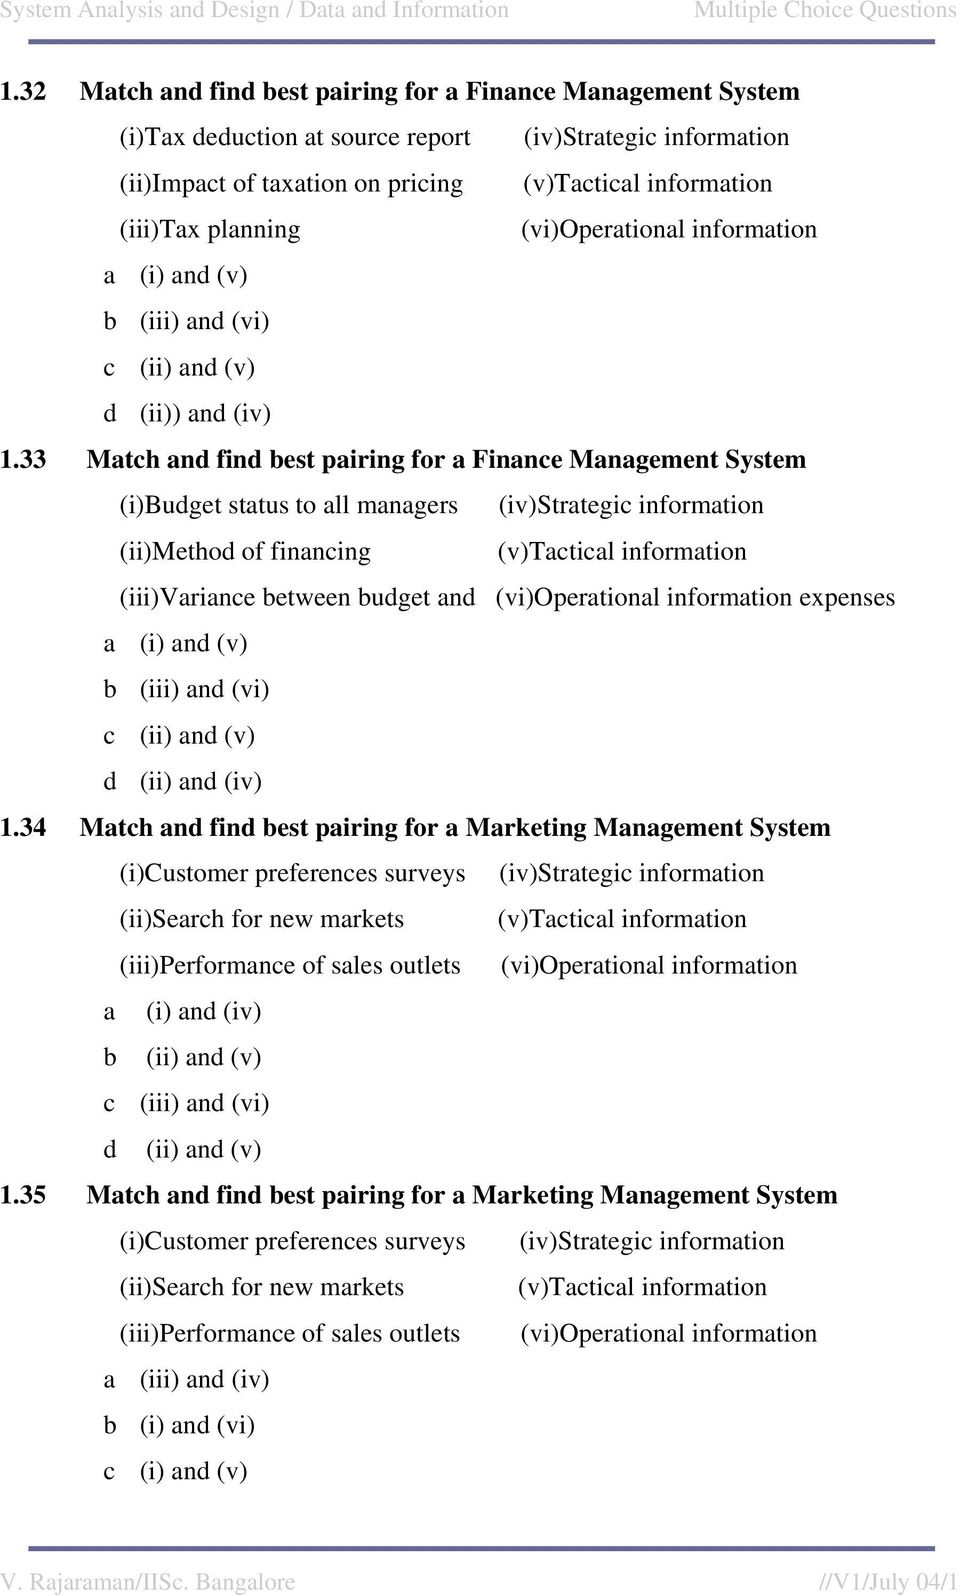 33 Match and find best pairing for a Finance Management System (i)budget status to all managers (iv)strategic information (ii)method of financing (v)tactical information (iii)variance between budget